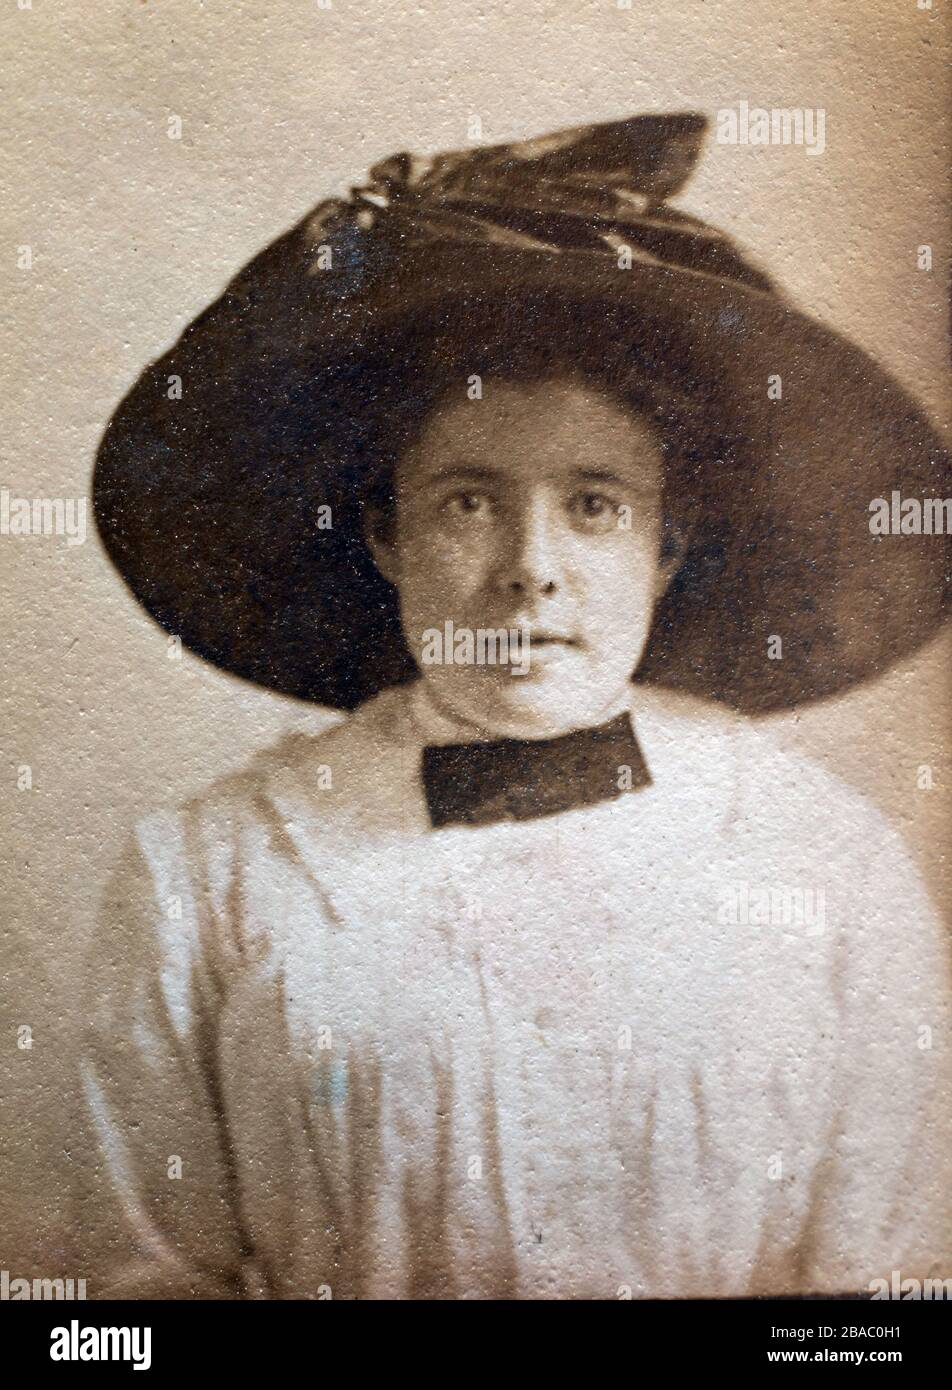 Archive portrait circa 1910 of a young Edwardian woman - printed on textured paper. Stock Photo